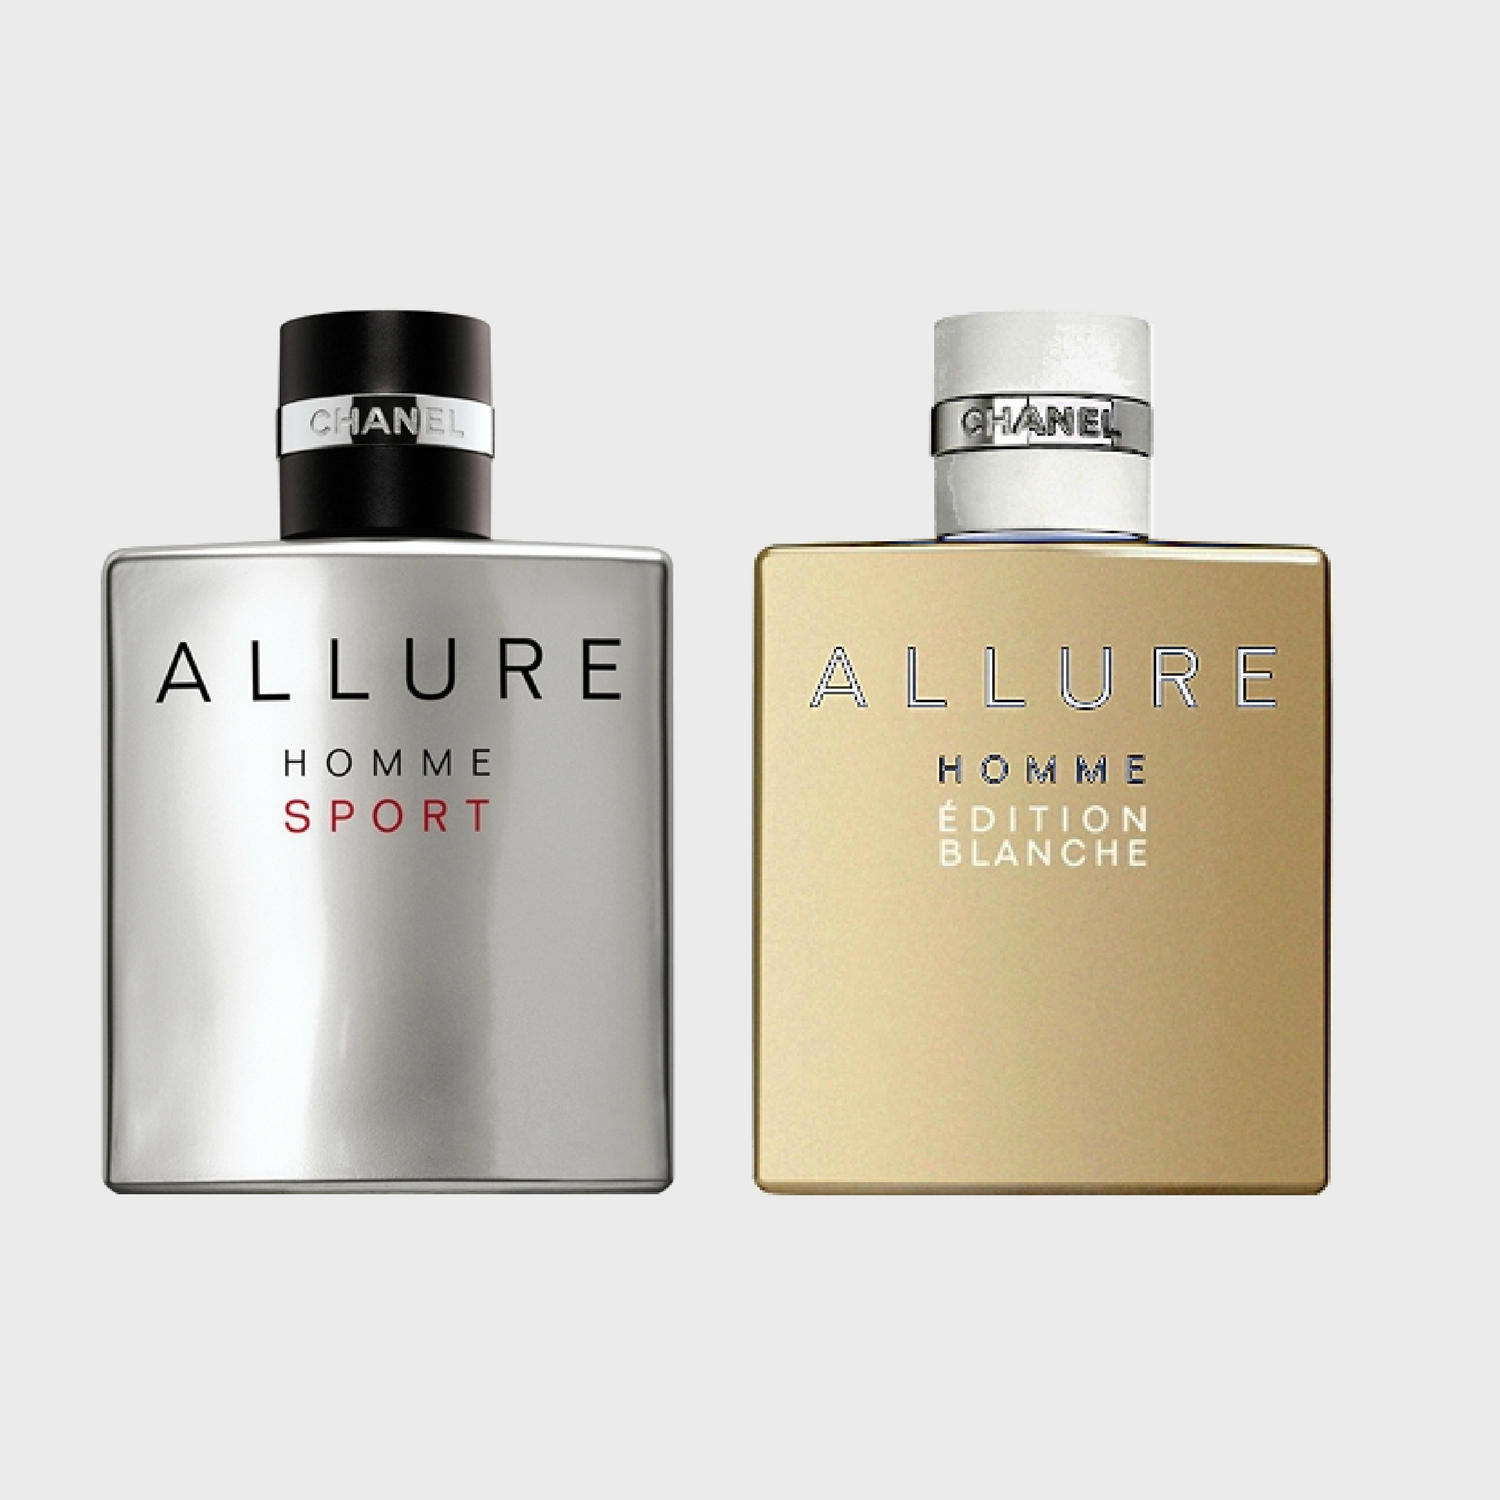 Chanel Allure Homme Sport & Chanel Allure Homme Edition Blanche | Mens Fragrance Review